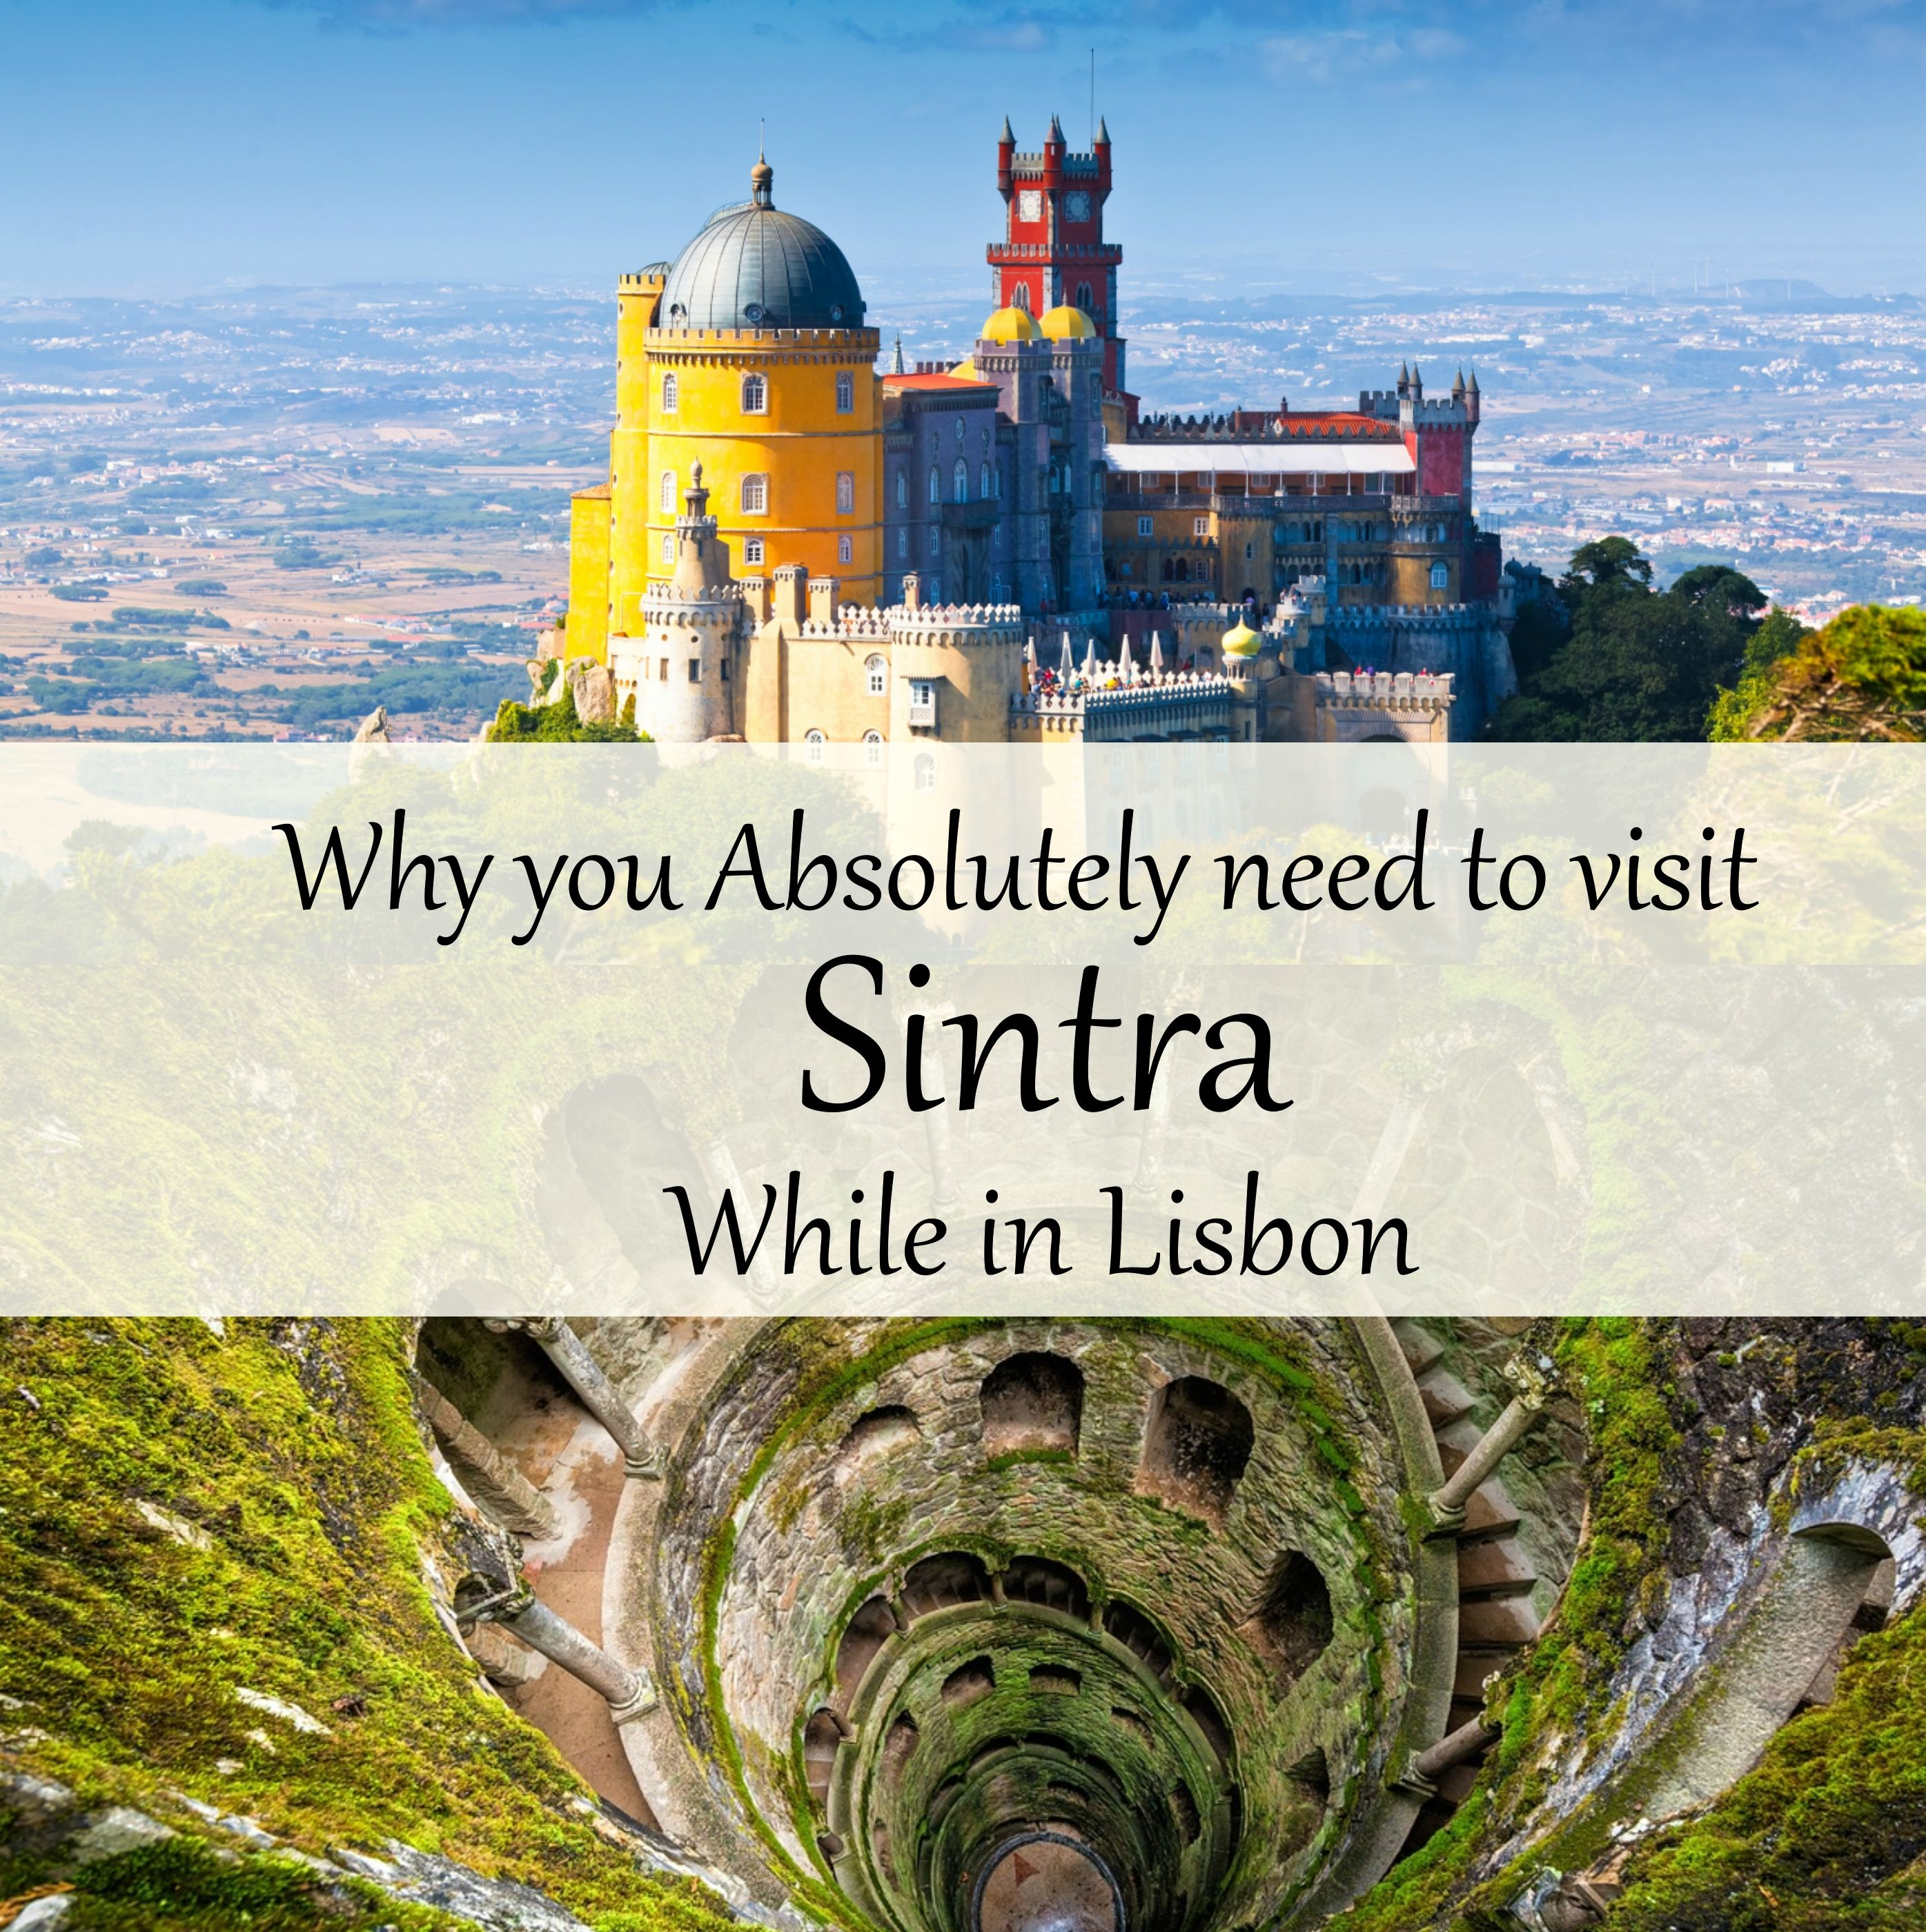 Why you absolutely need to visit SIntra while in Lisbon Planning a – Site That Plans Trip For You